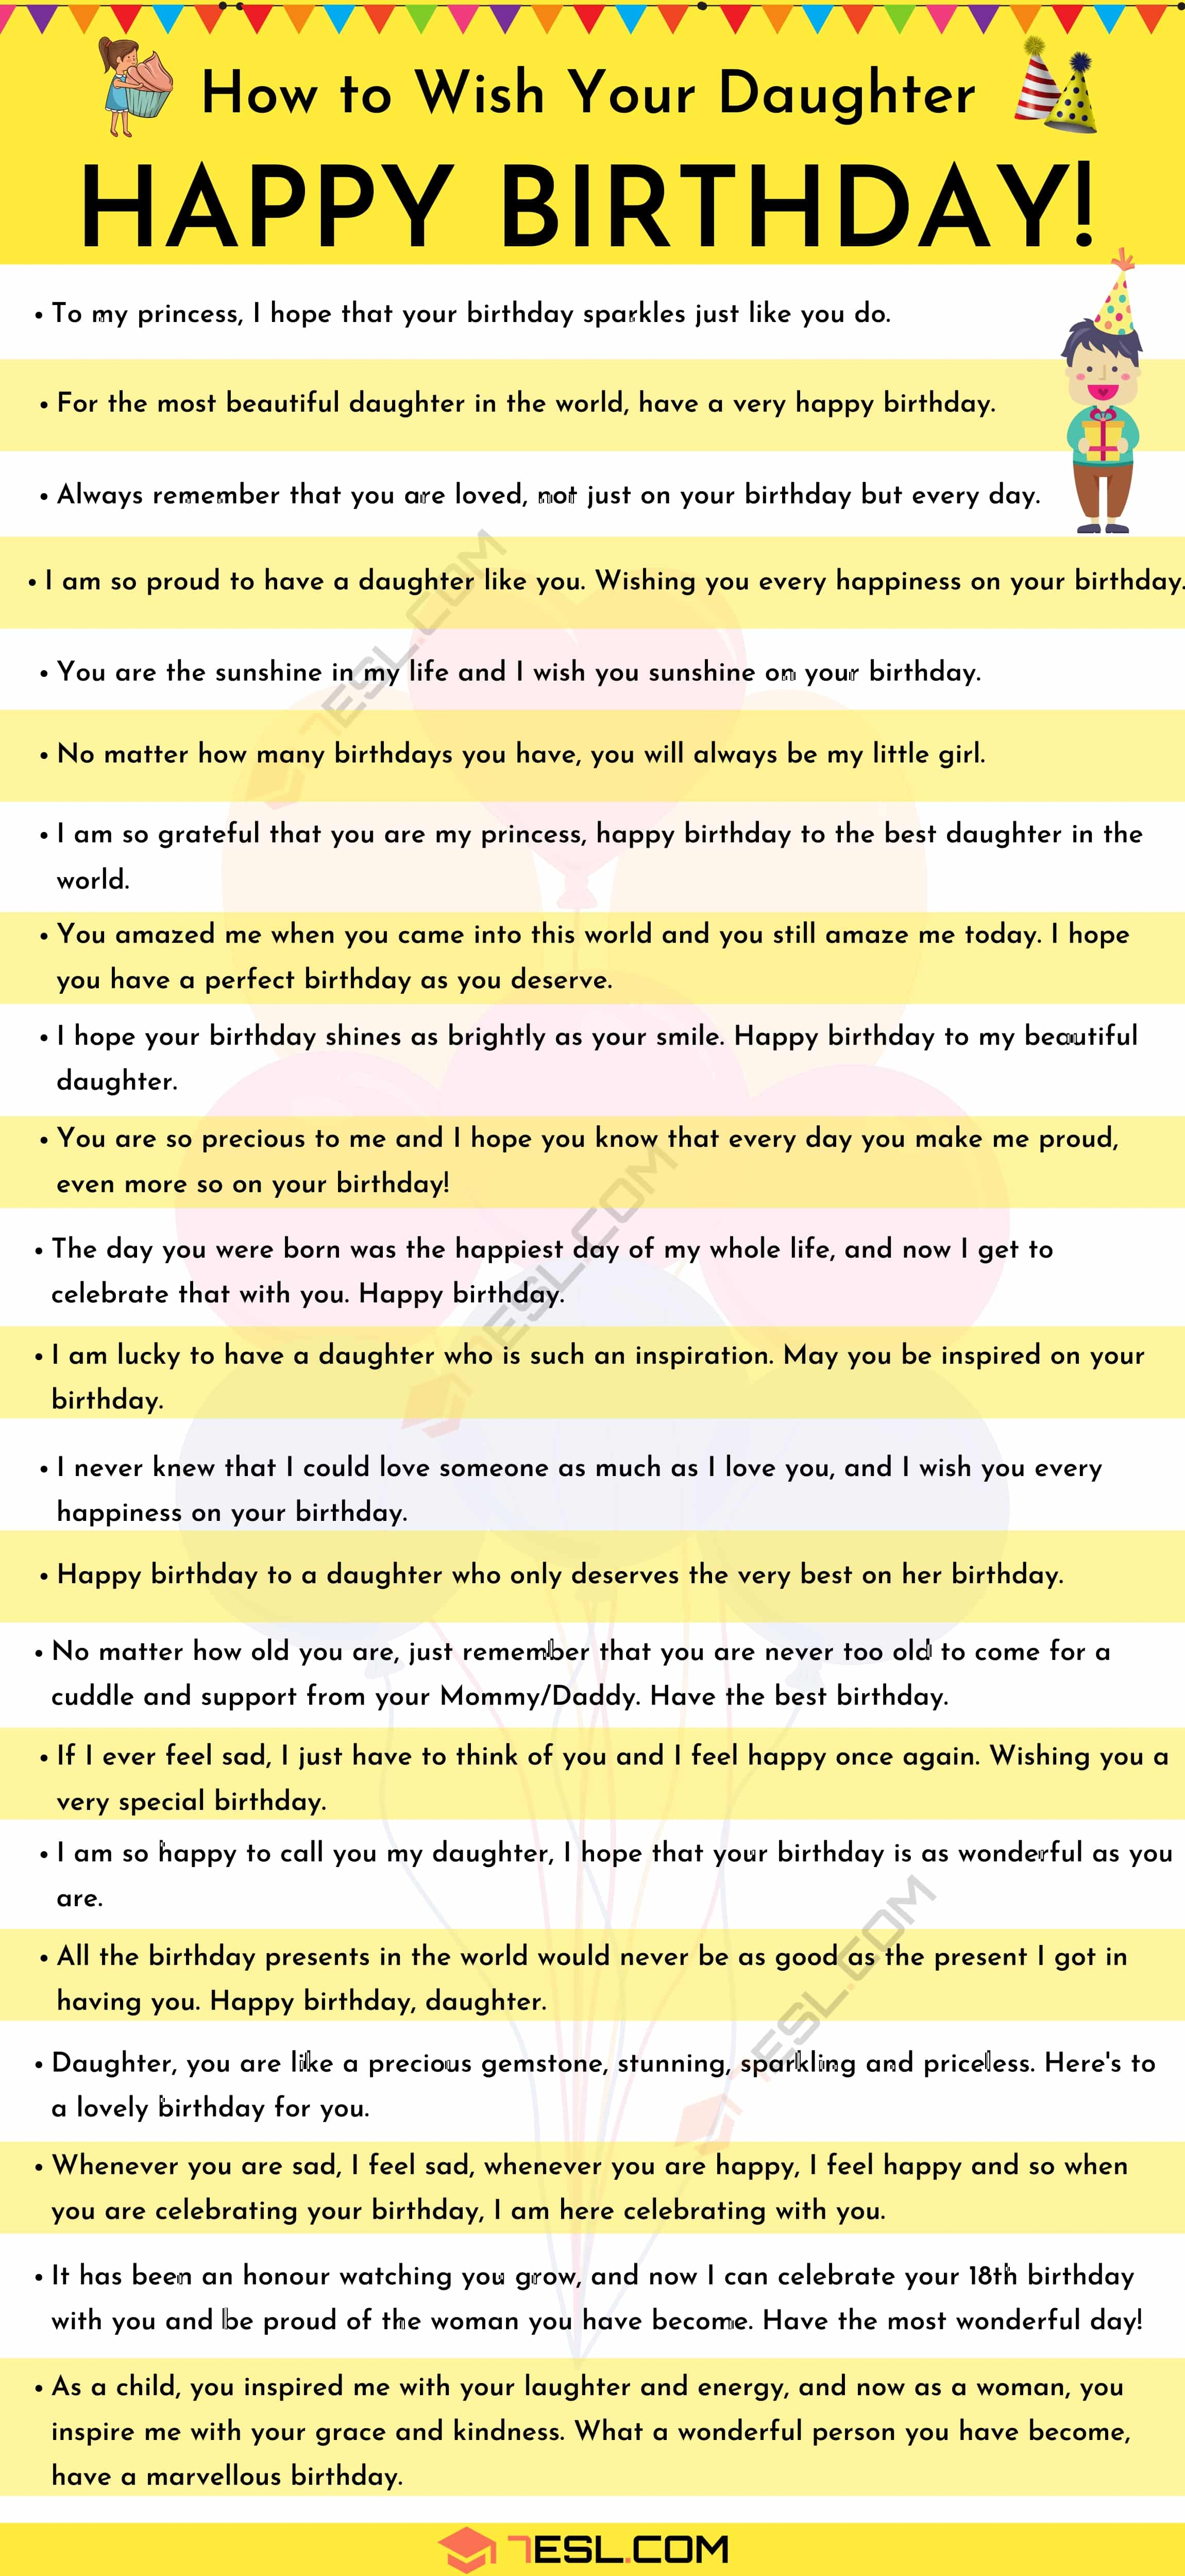 List of birthday wishes for your daughter